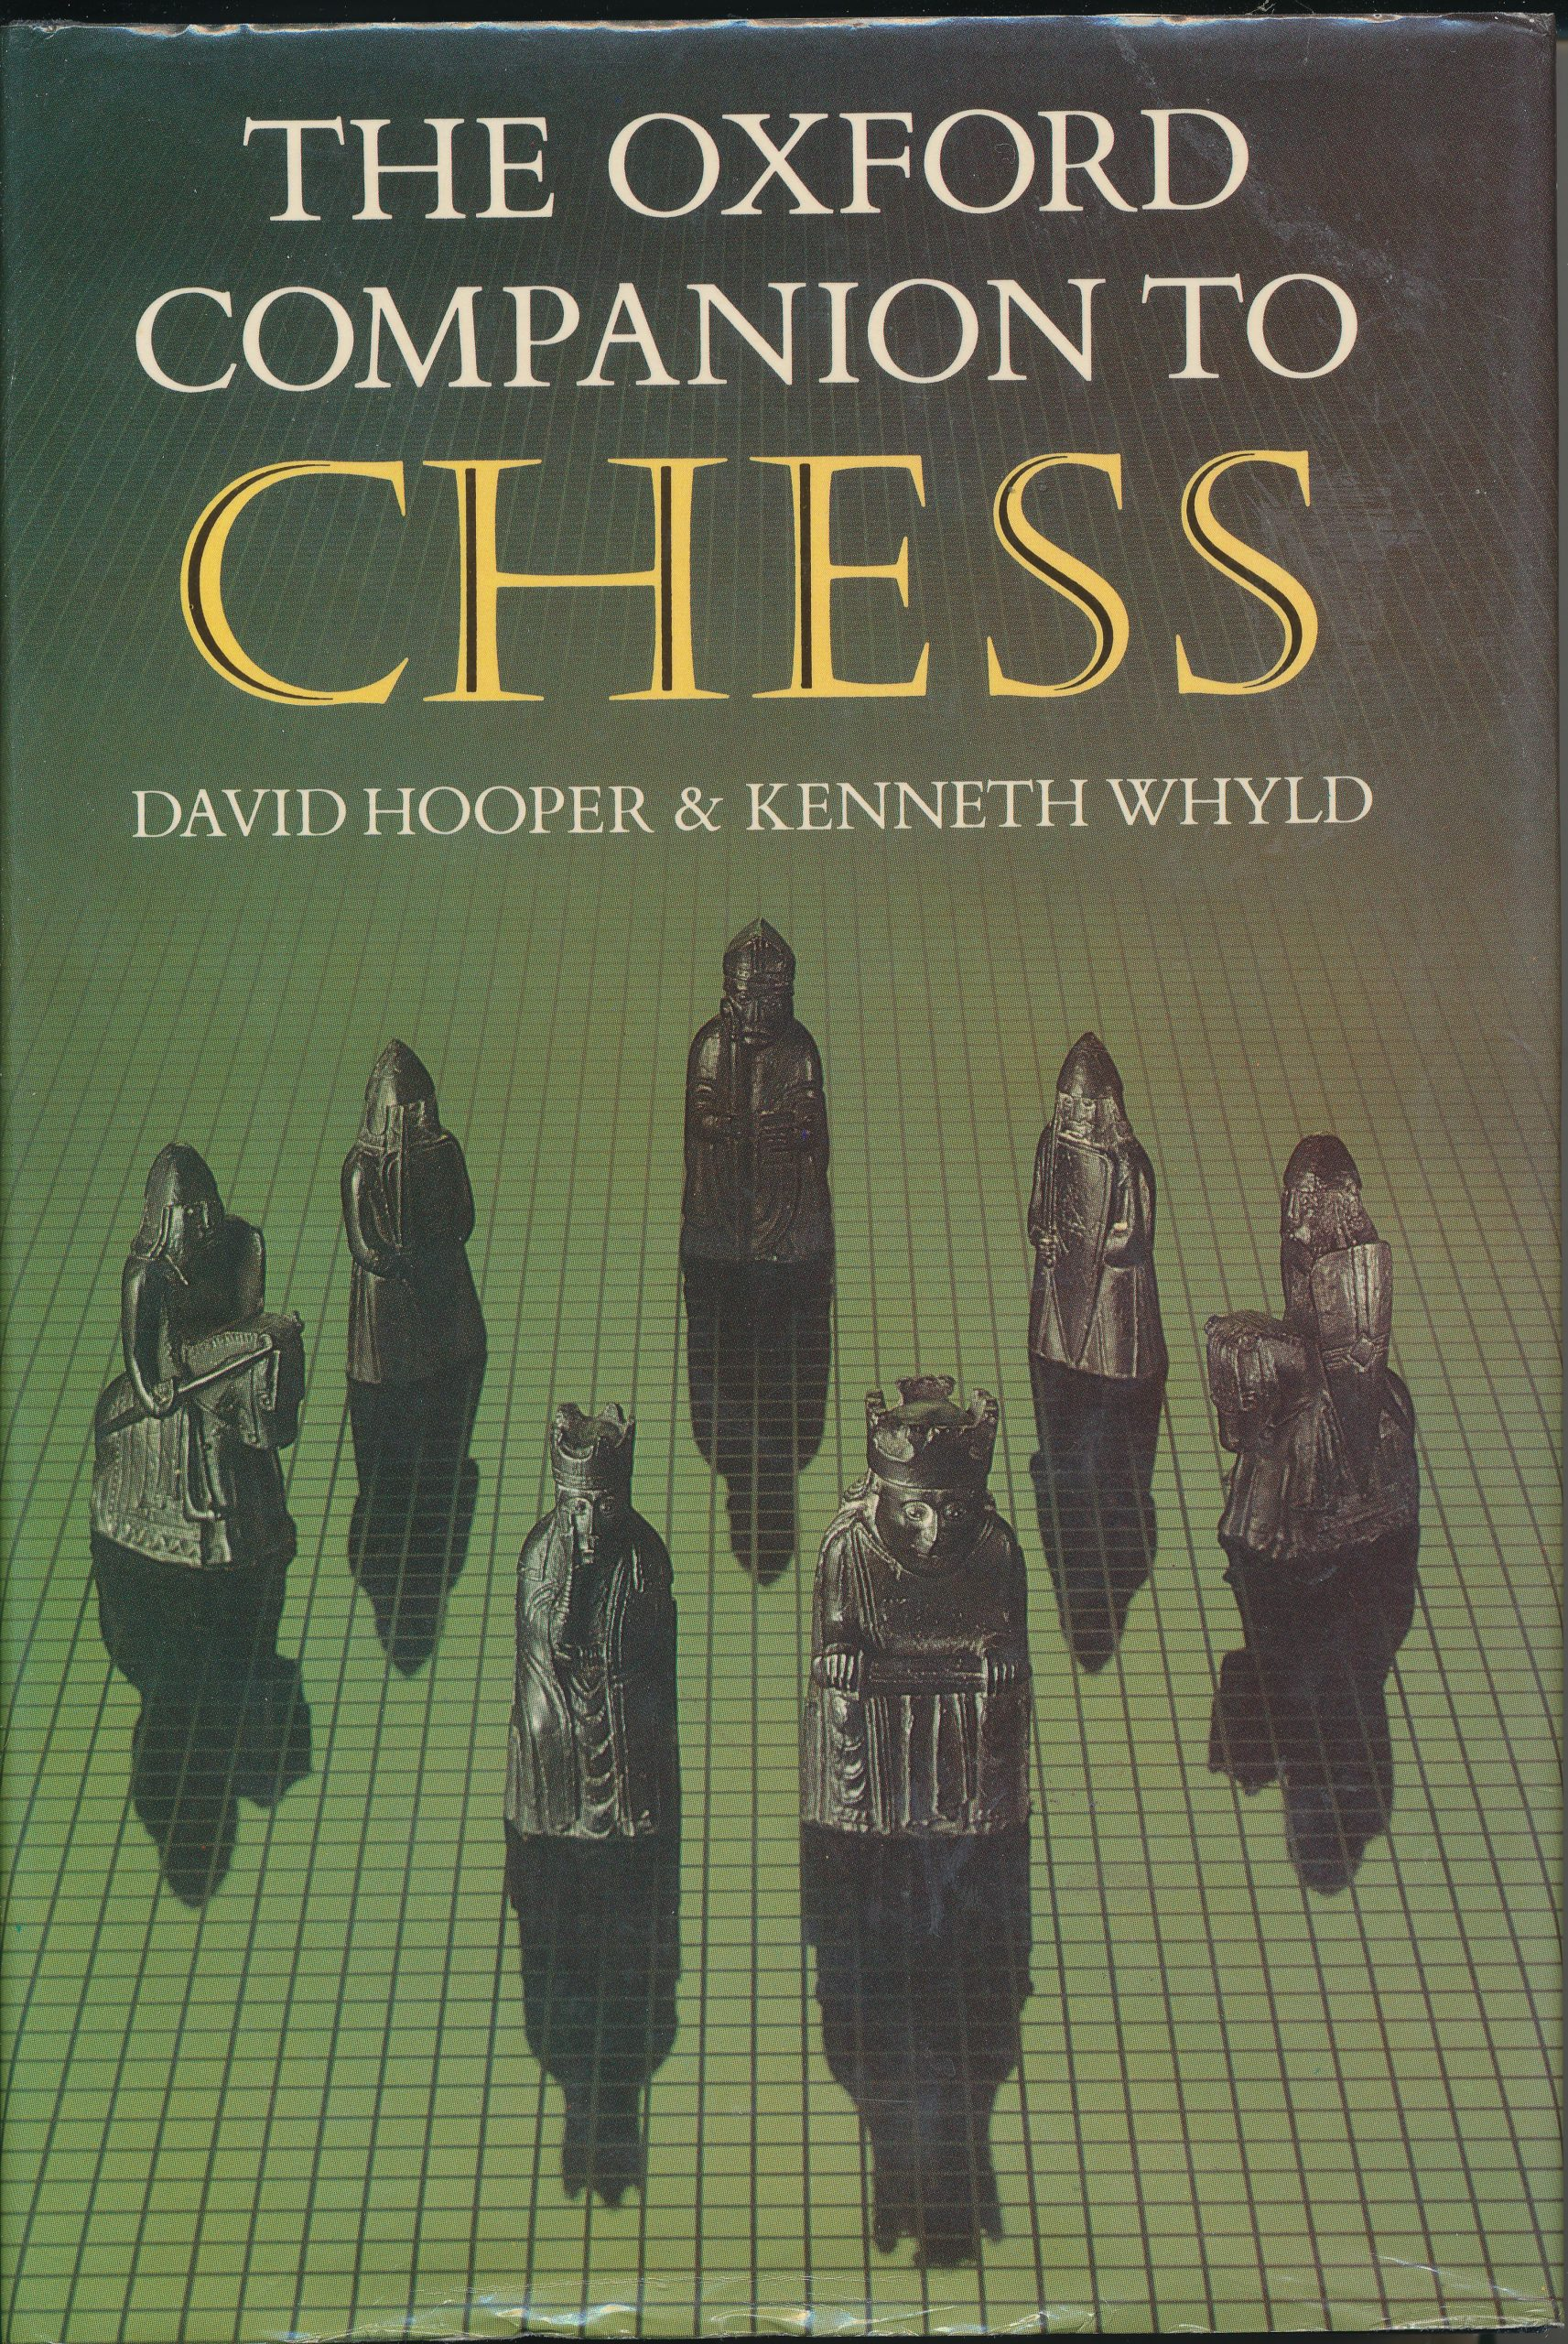 The Oxford Companion to Chess, 1st Edition, David Hooper & Ken Whyld, Oxford University Press, 1984, ISBN 0 19 217540 8